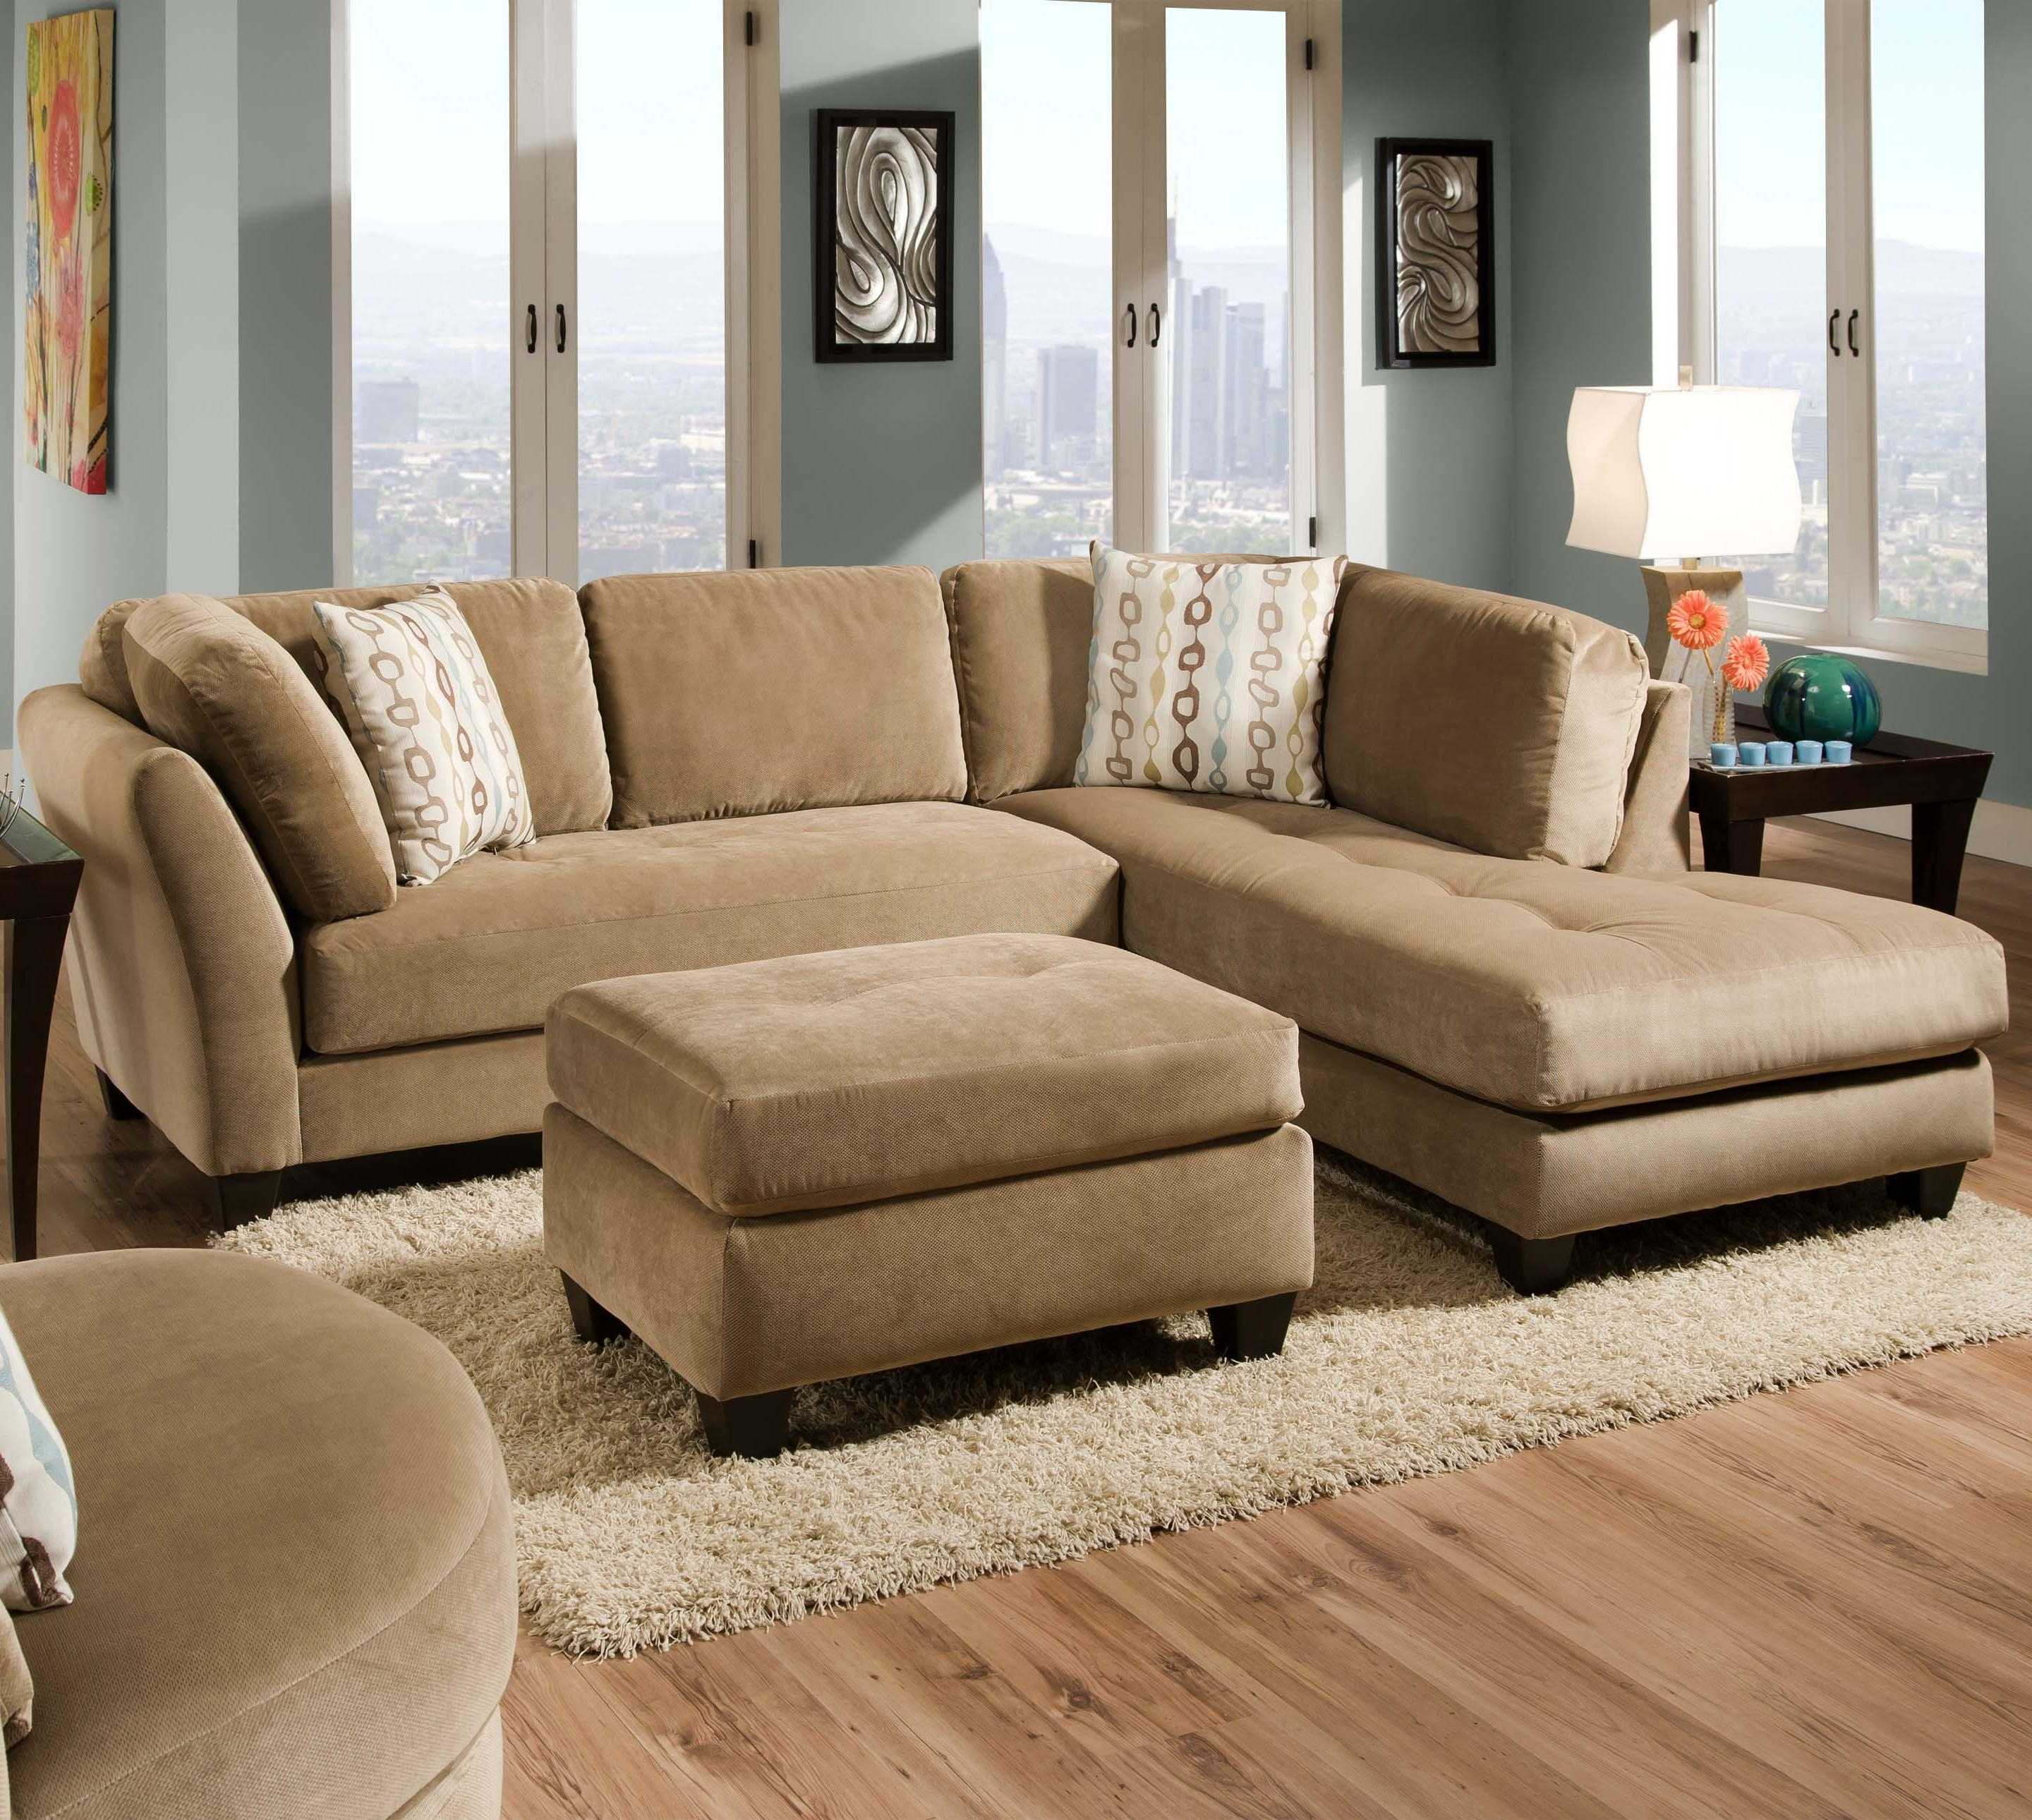 35B Slugger Mocha 2 Piece Sectionalcorinthian – Great American Regarding Memphis Tn Sectional Sofas (Image 2 of 10)